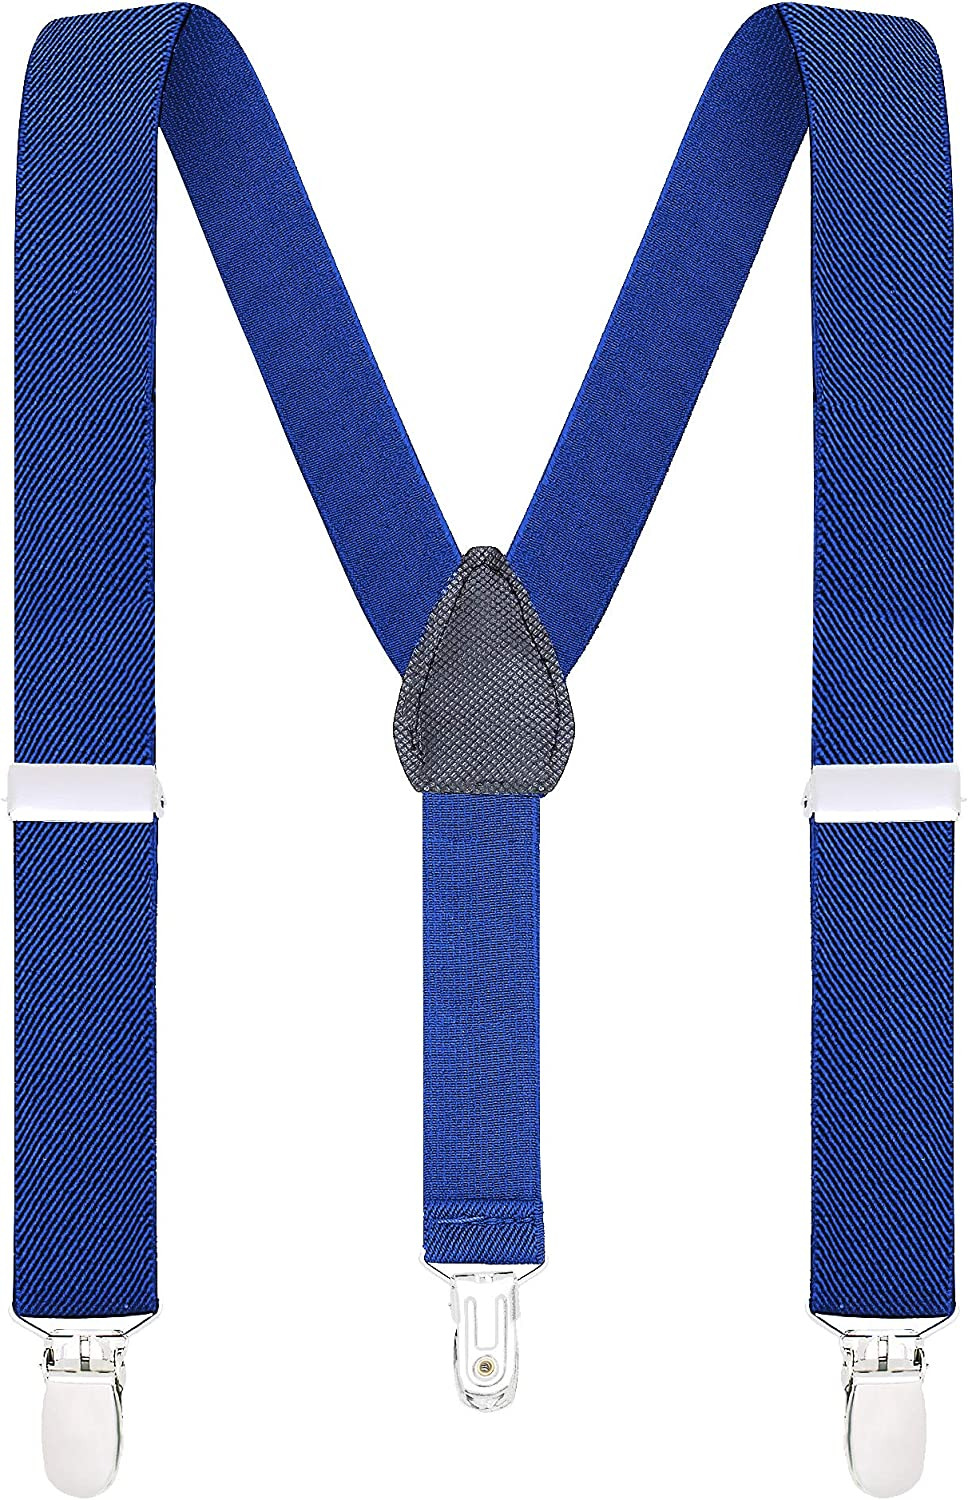 Buyless Fashion Kids And Baby 1 Elastic Adjustable Trouser Y Back Suspenders Braces With Strong Heavy Duty Clips